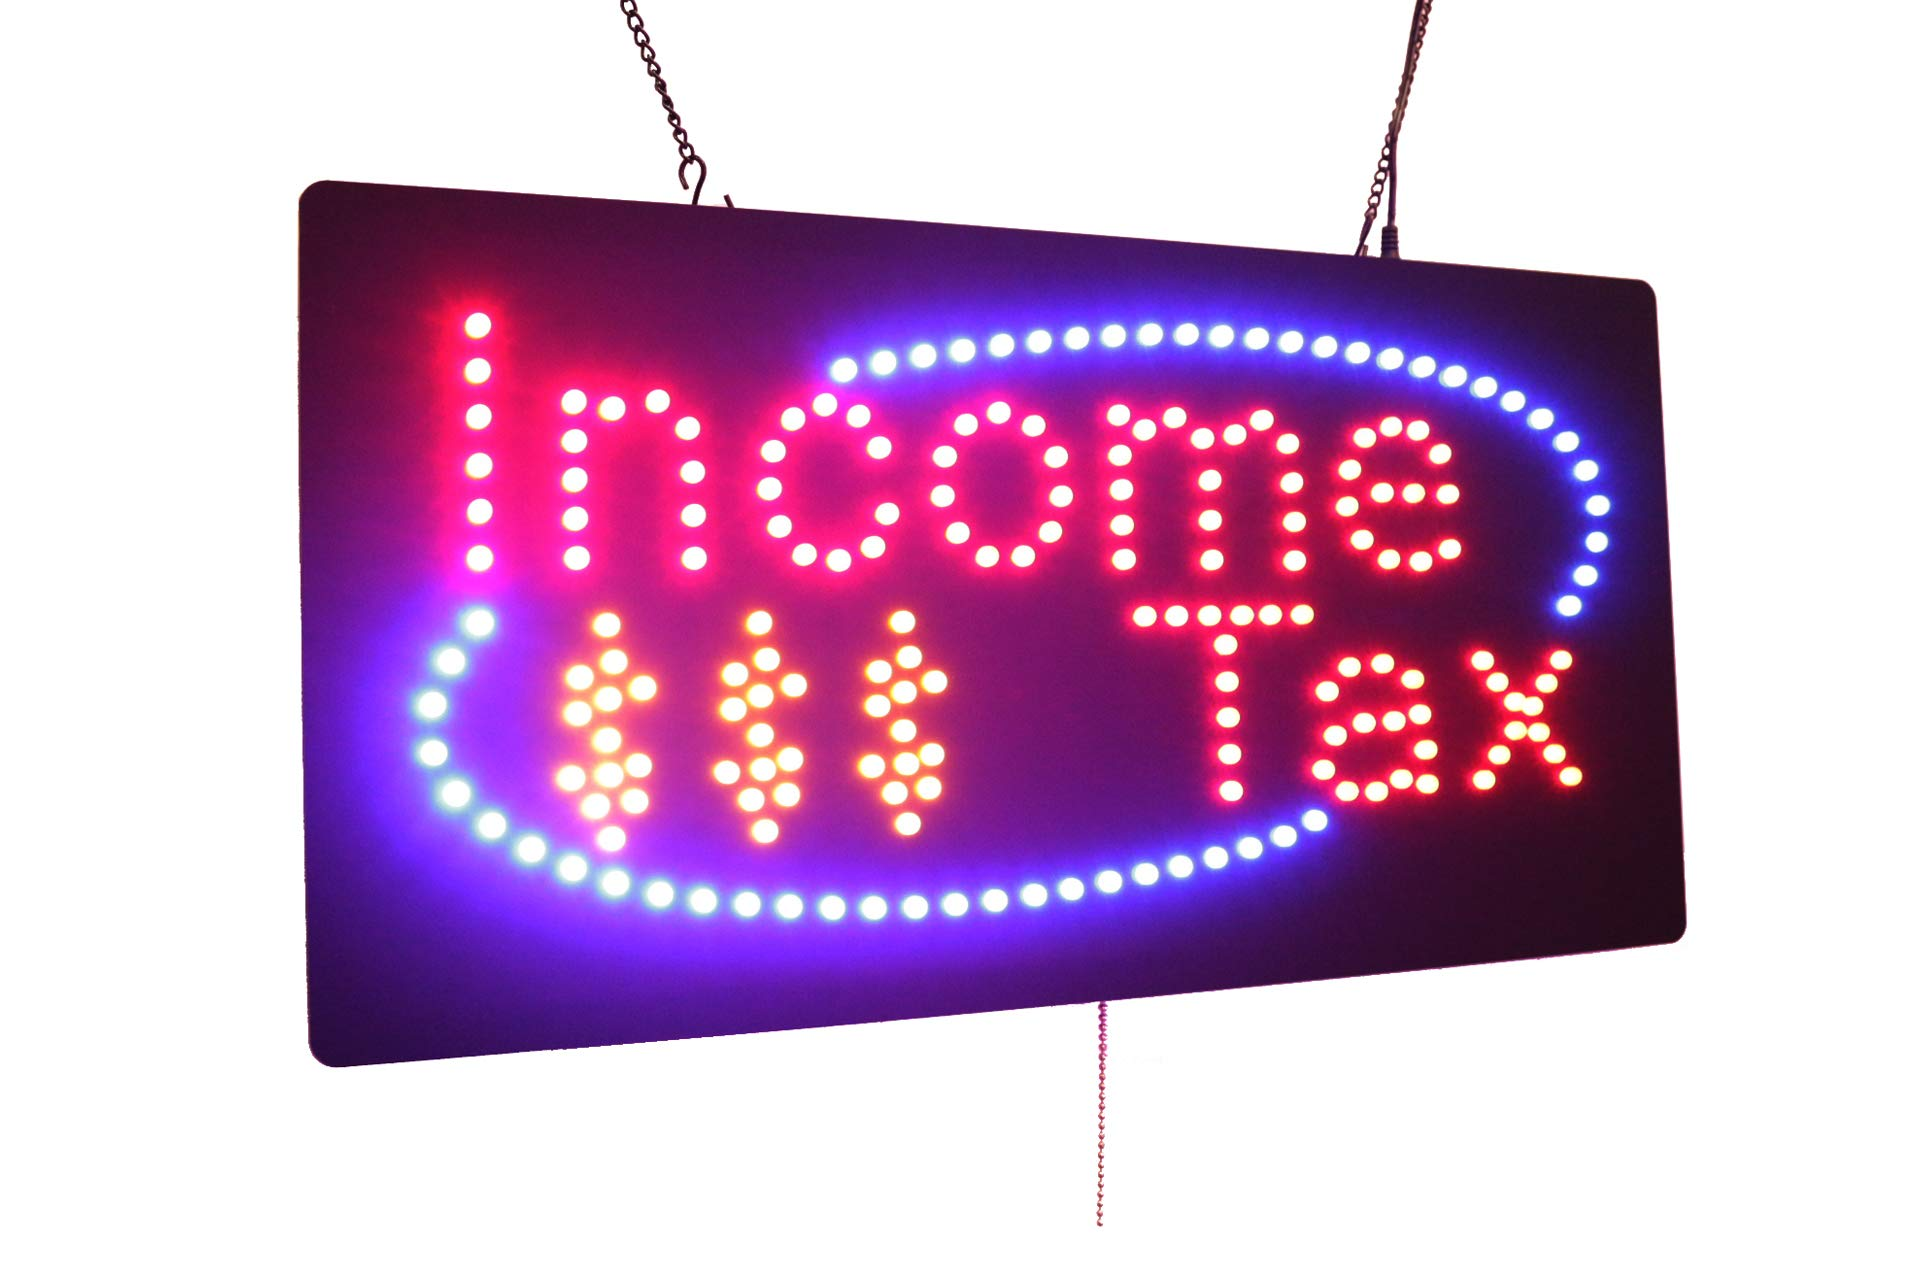 Income Tax Sign, High Quality LED Open Sign, Store Sign, Business Sign, Windows Sign by Topking LED